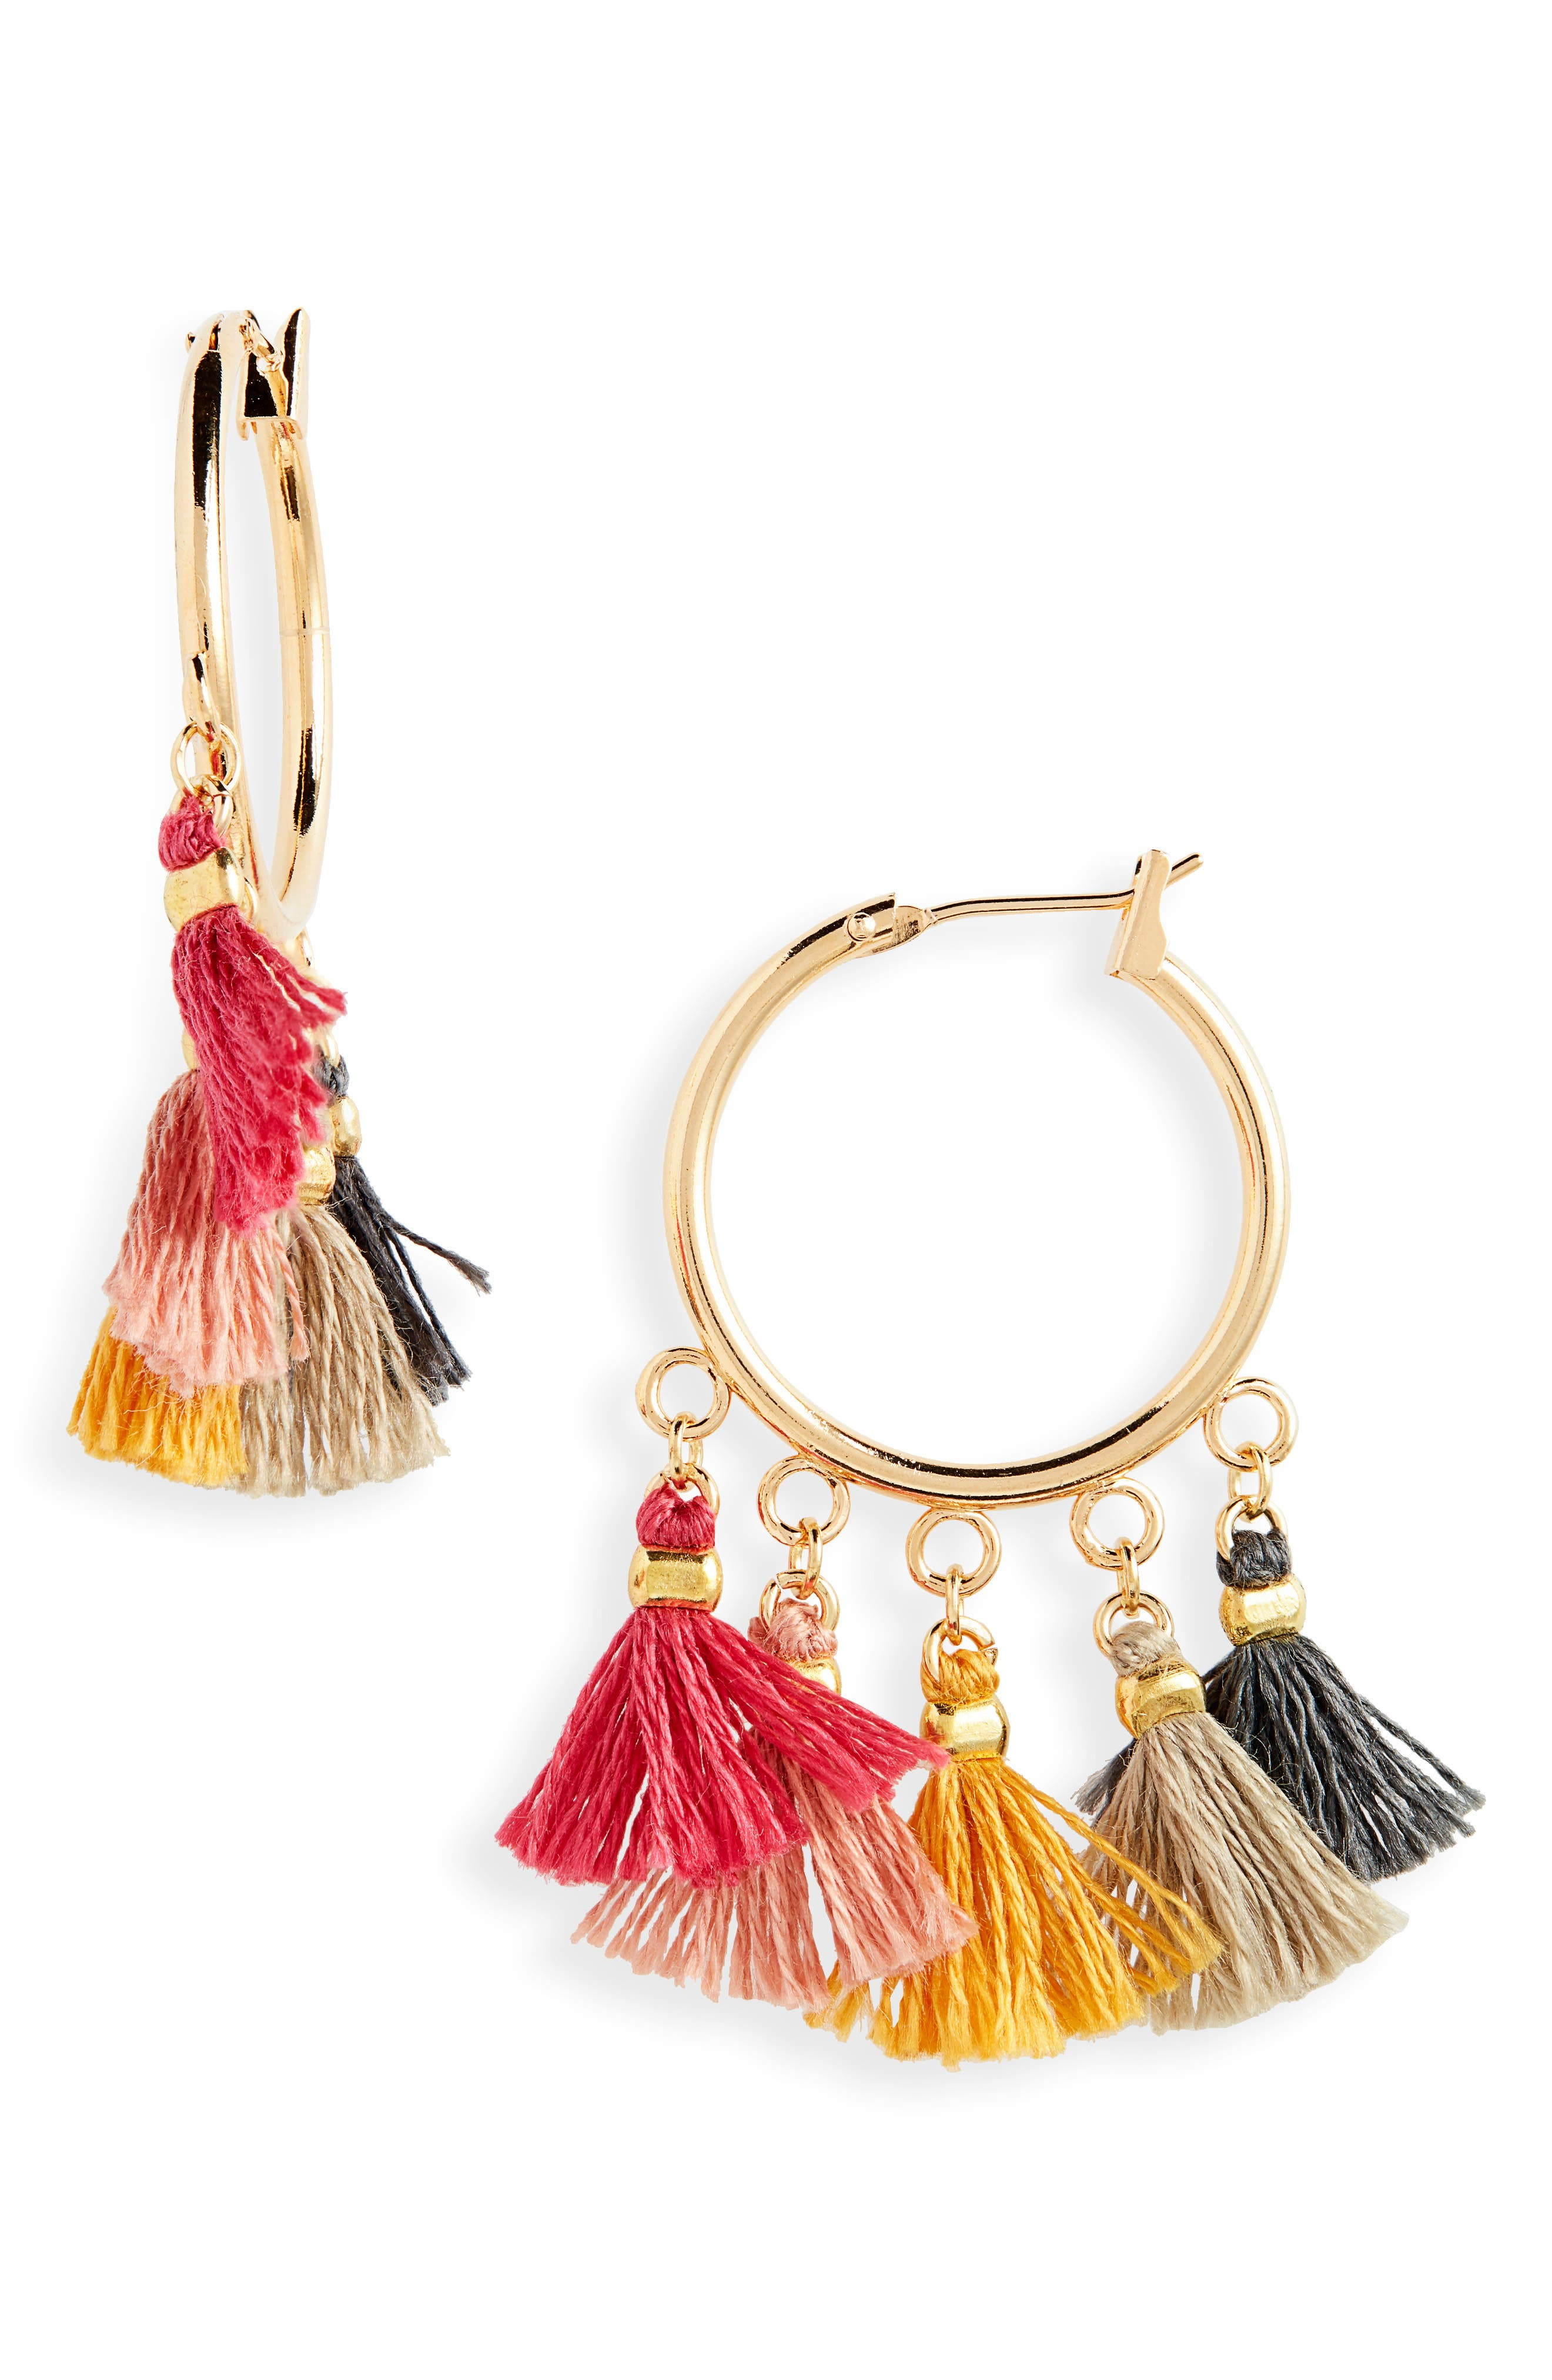 Sashi Lilu Hoop Earrings,                             Main thumbnail 1, color,                             710